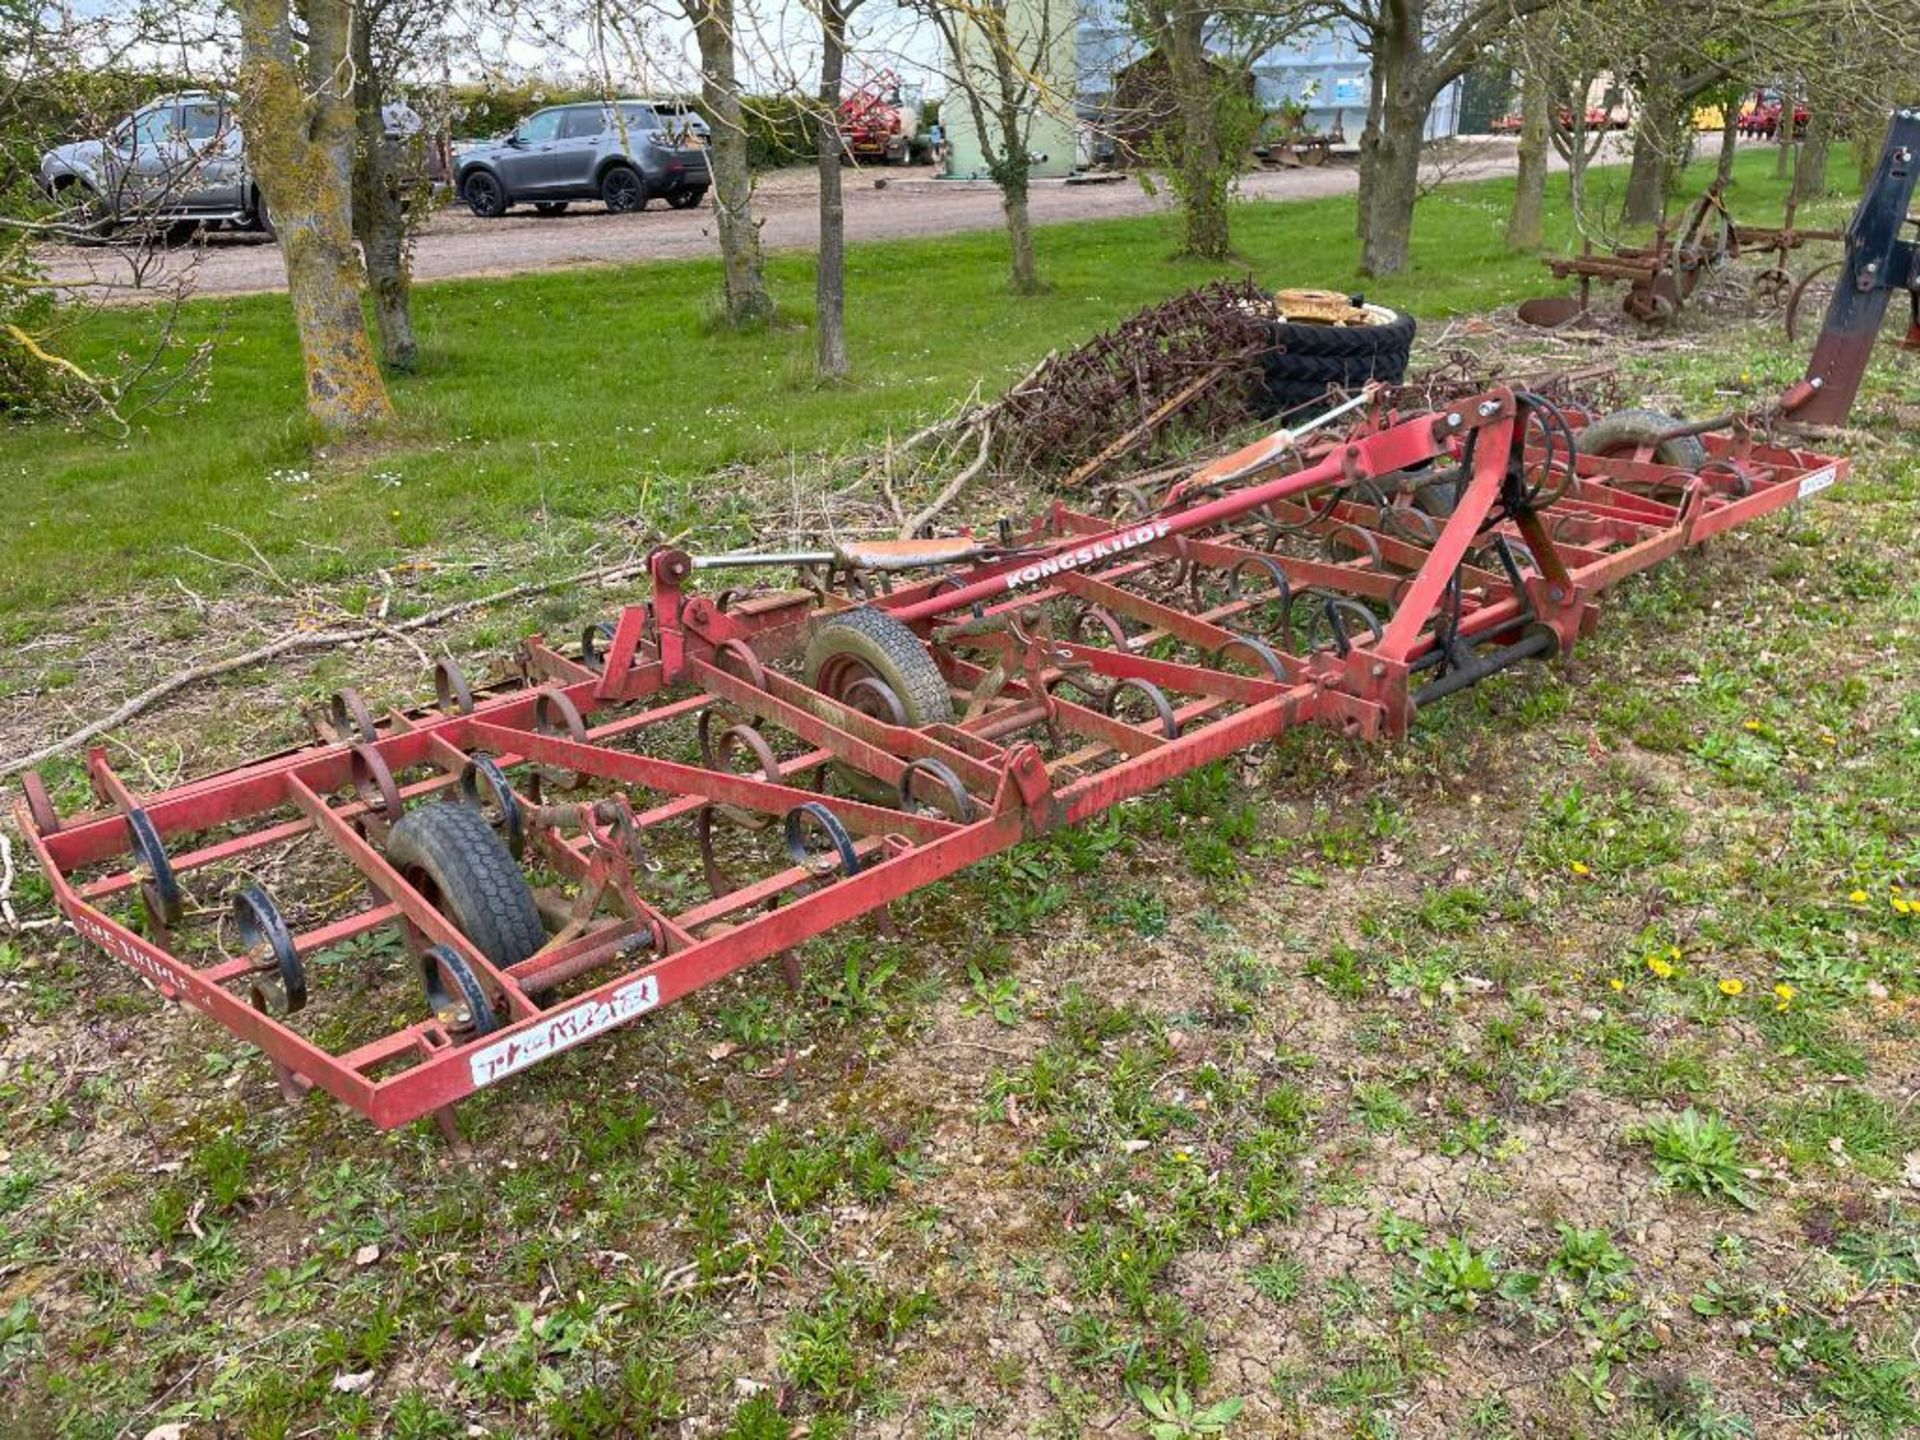 Kongskilde Triple K spring tine cultivator 5.7m, linkage mounted, hydraulic folding. Serial No: 0111 - Image 5 of 5